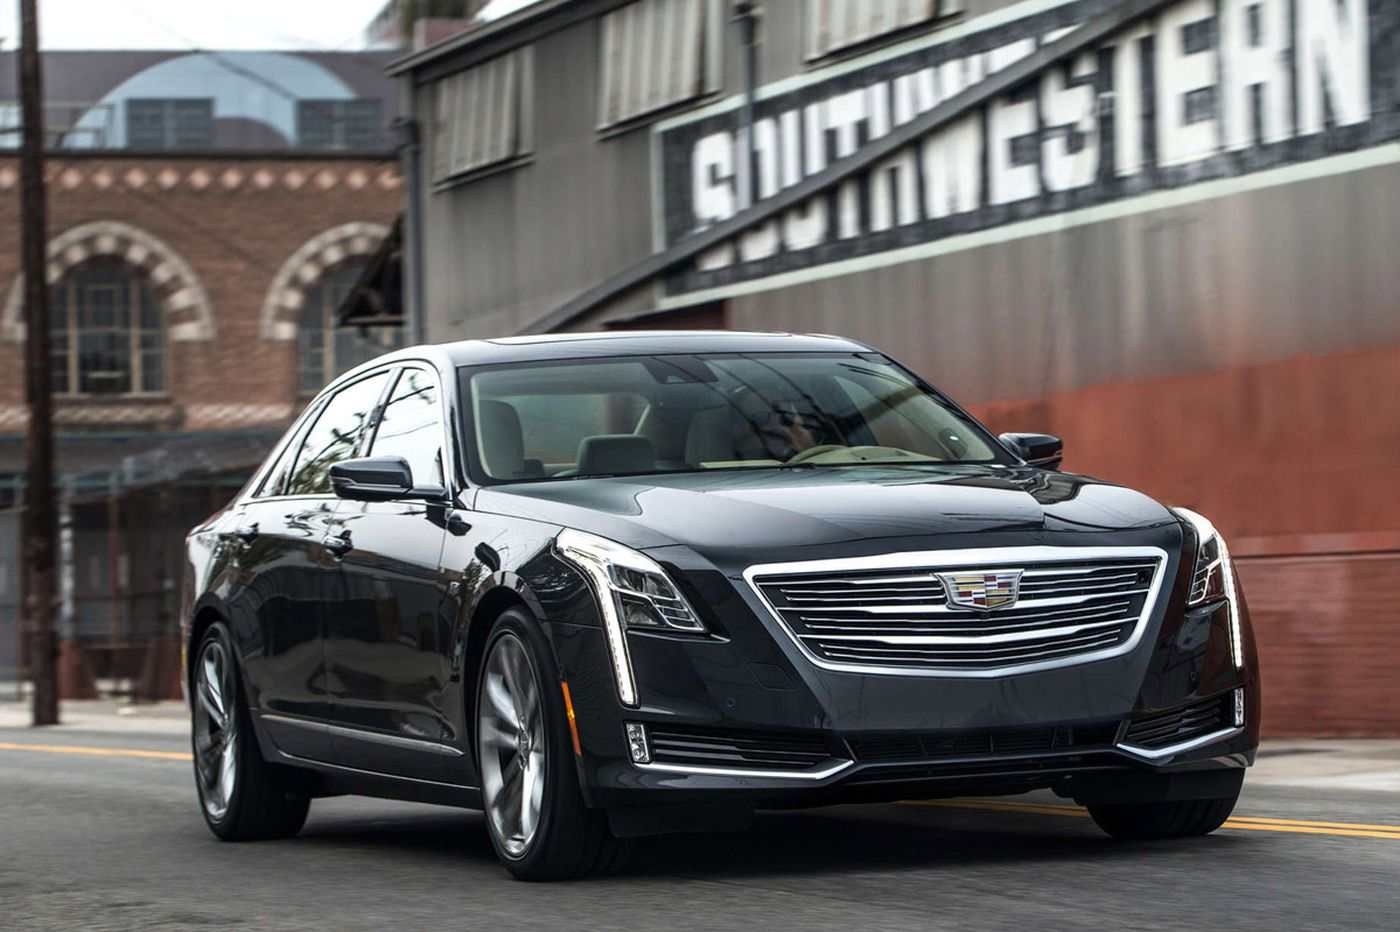 New CT6 is light, luxurious